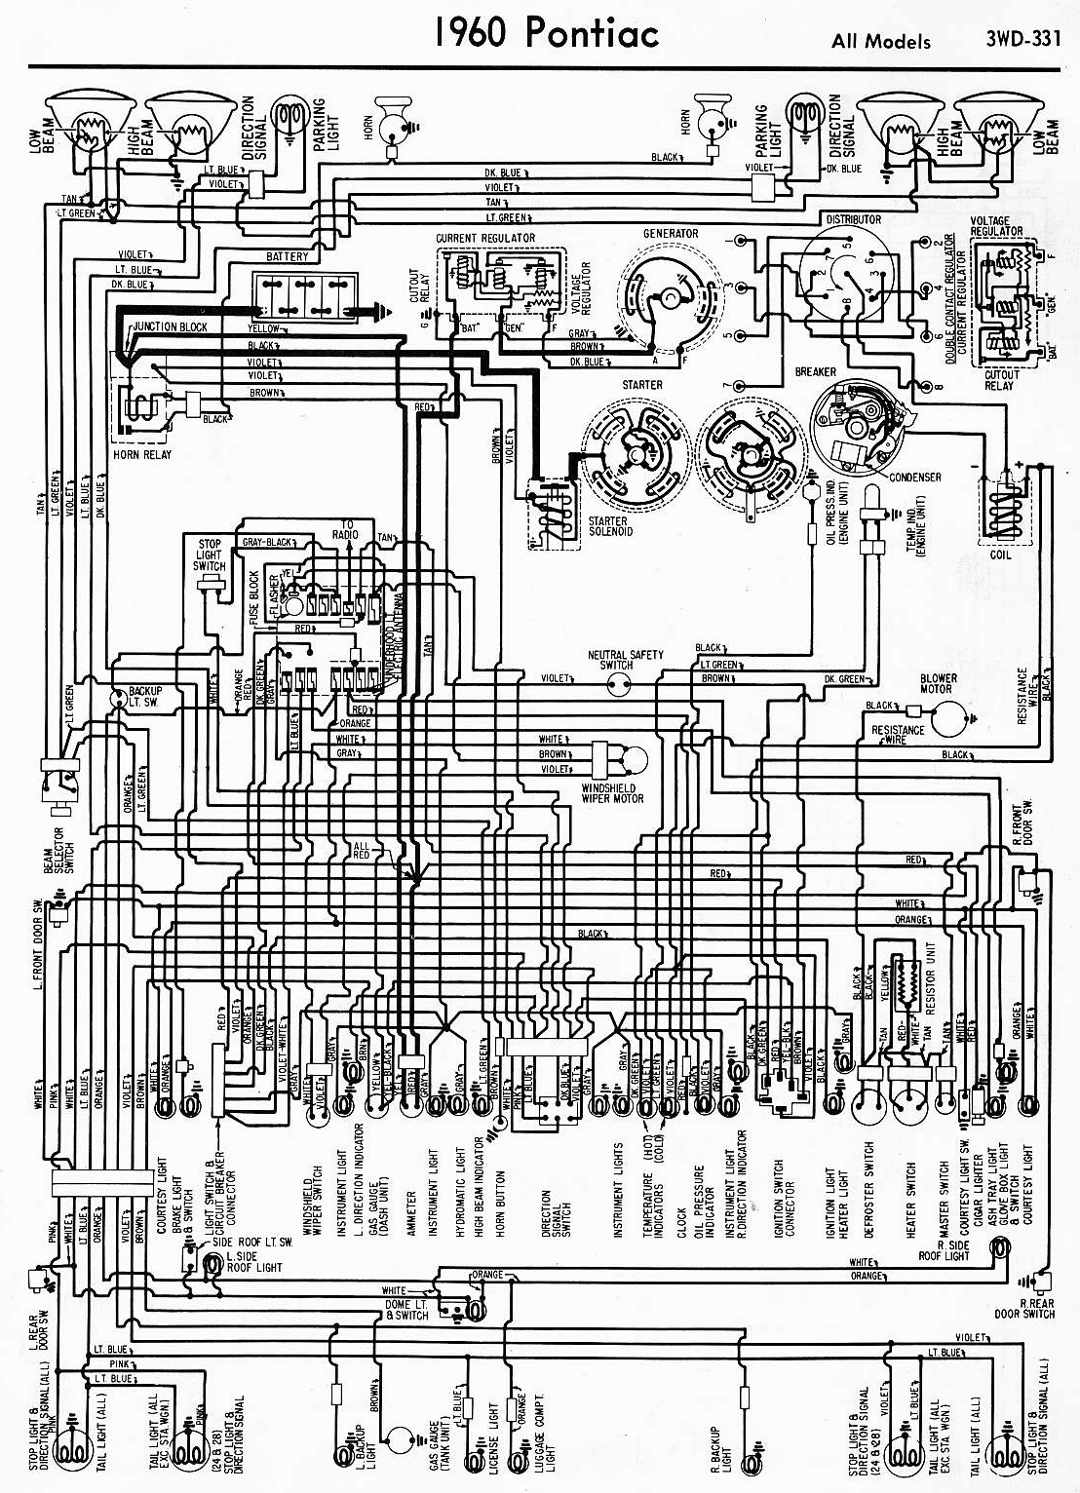 Wiring Diagram Pontiac Gto Judge Library Ac 1966 Wiper Trusted 1970 Harness